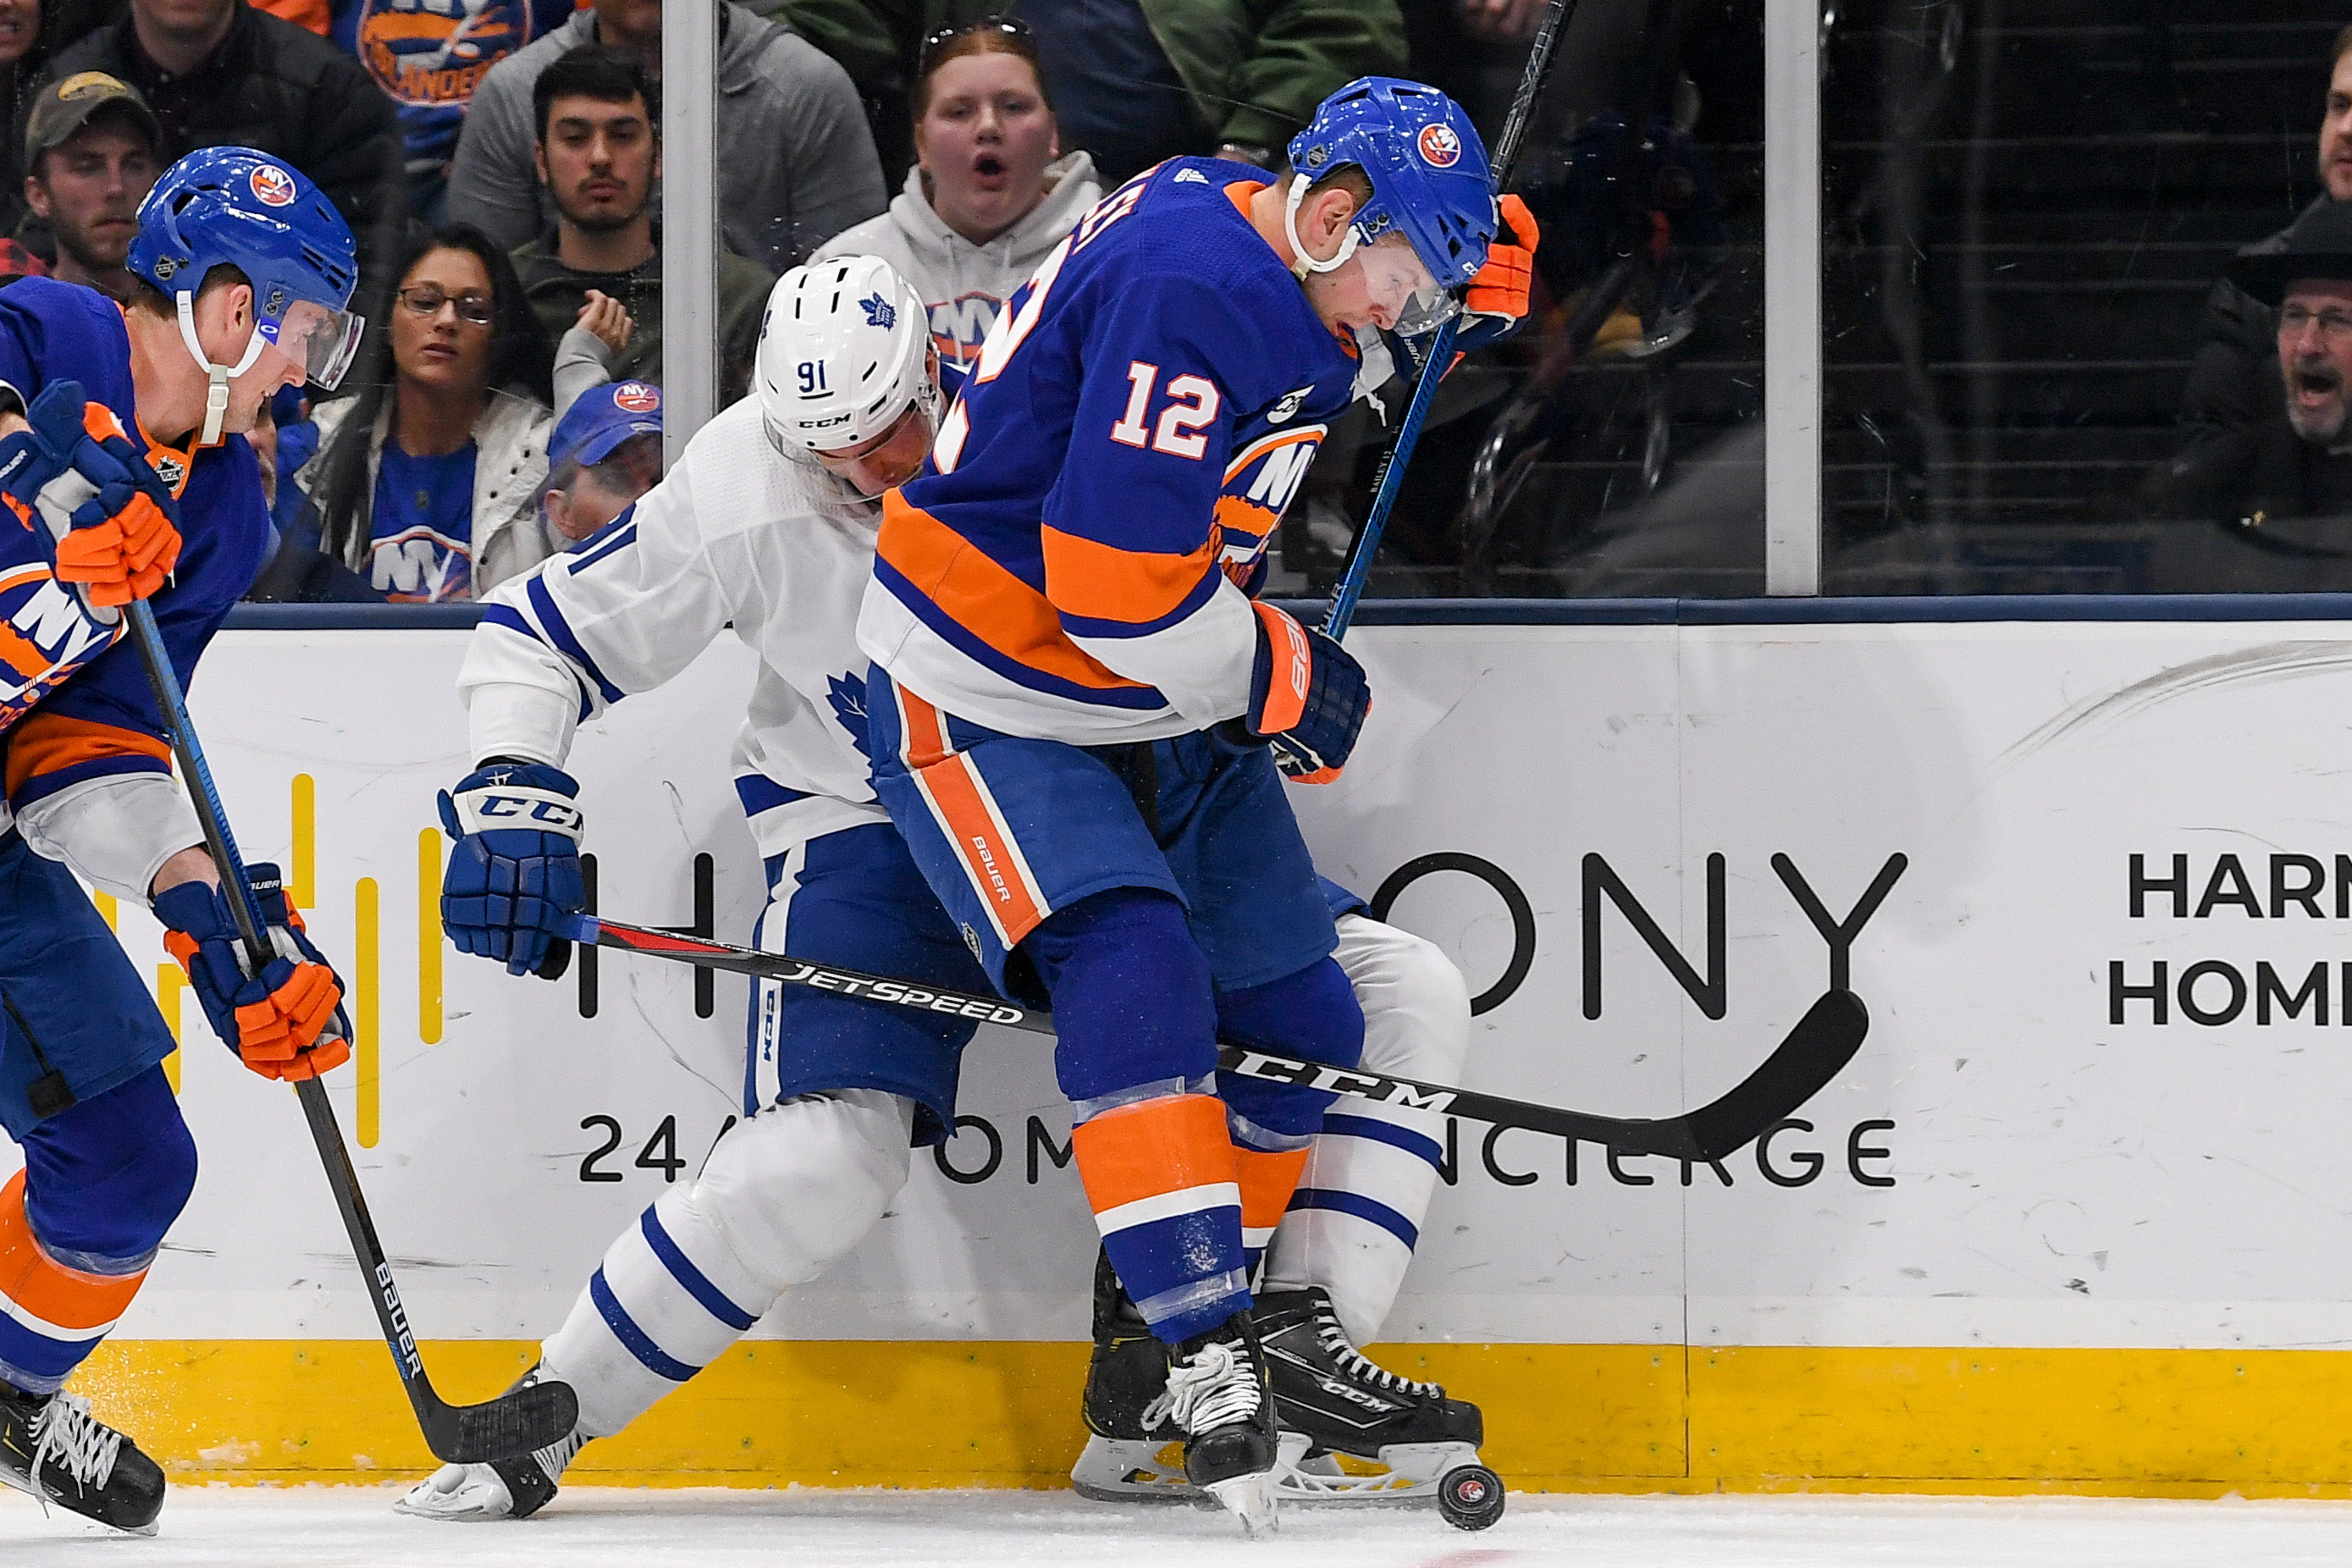 Apr 1, 2019; Uniondale, NY, USA; Toronto Maple Leafs center John Tavares (91) and New York Islanders right wing Josh Bailey (12) battle for the puck on the boards during the second period at Nassau Veterans Memorial Coliseum. Mandatory Credit: Dennis Schneidler-USA TODAY Sports